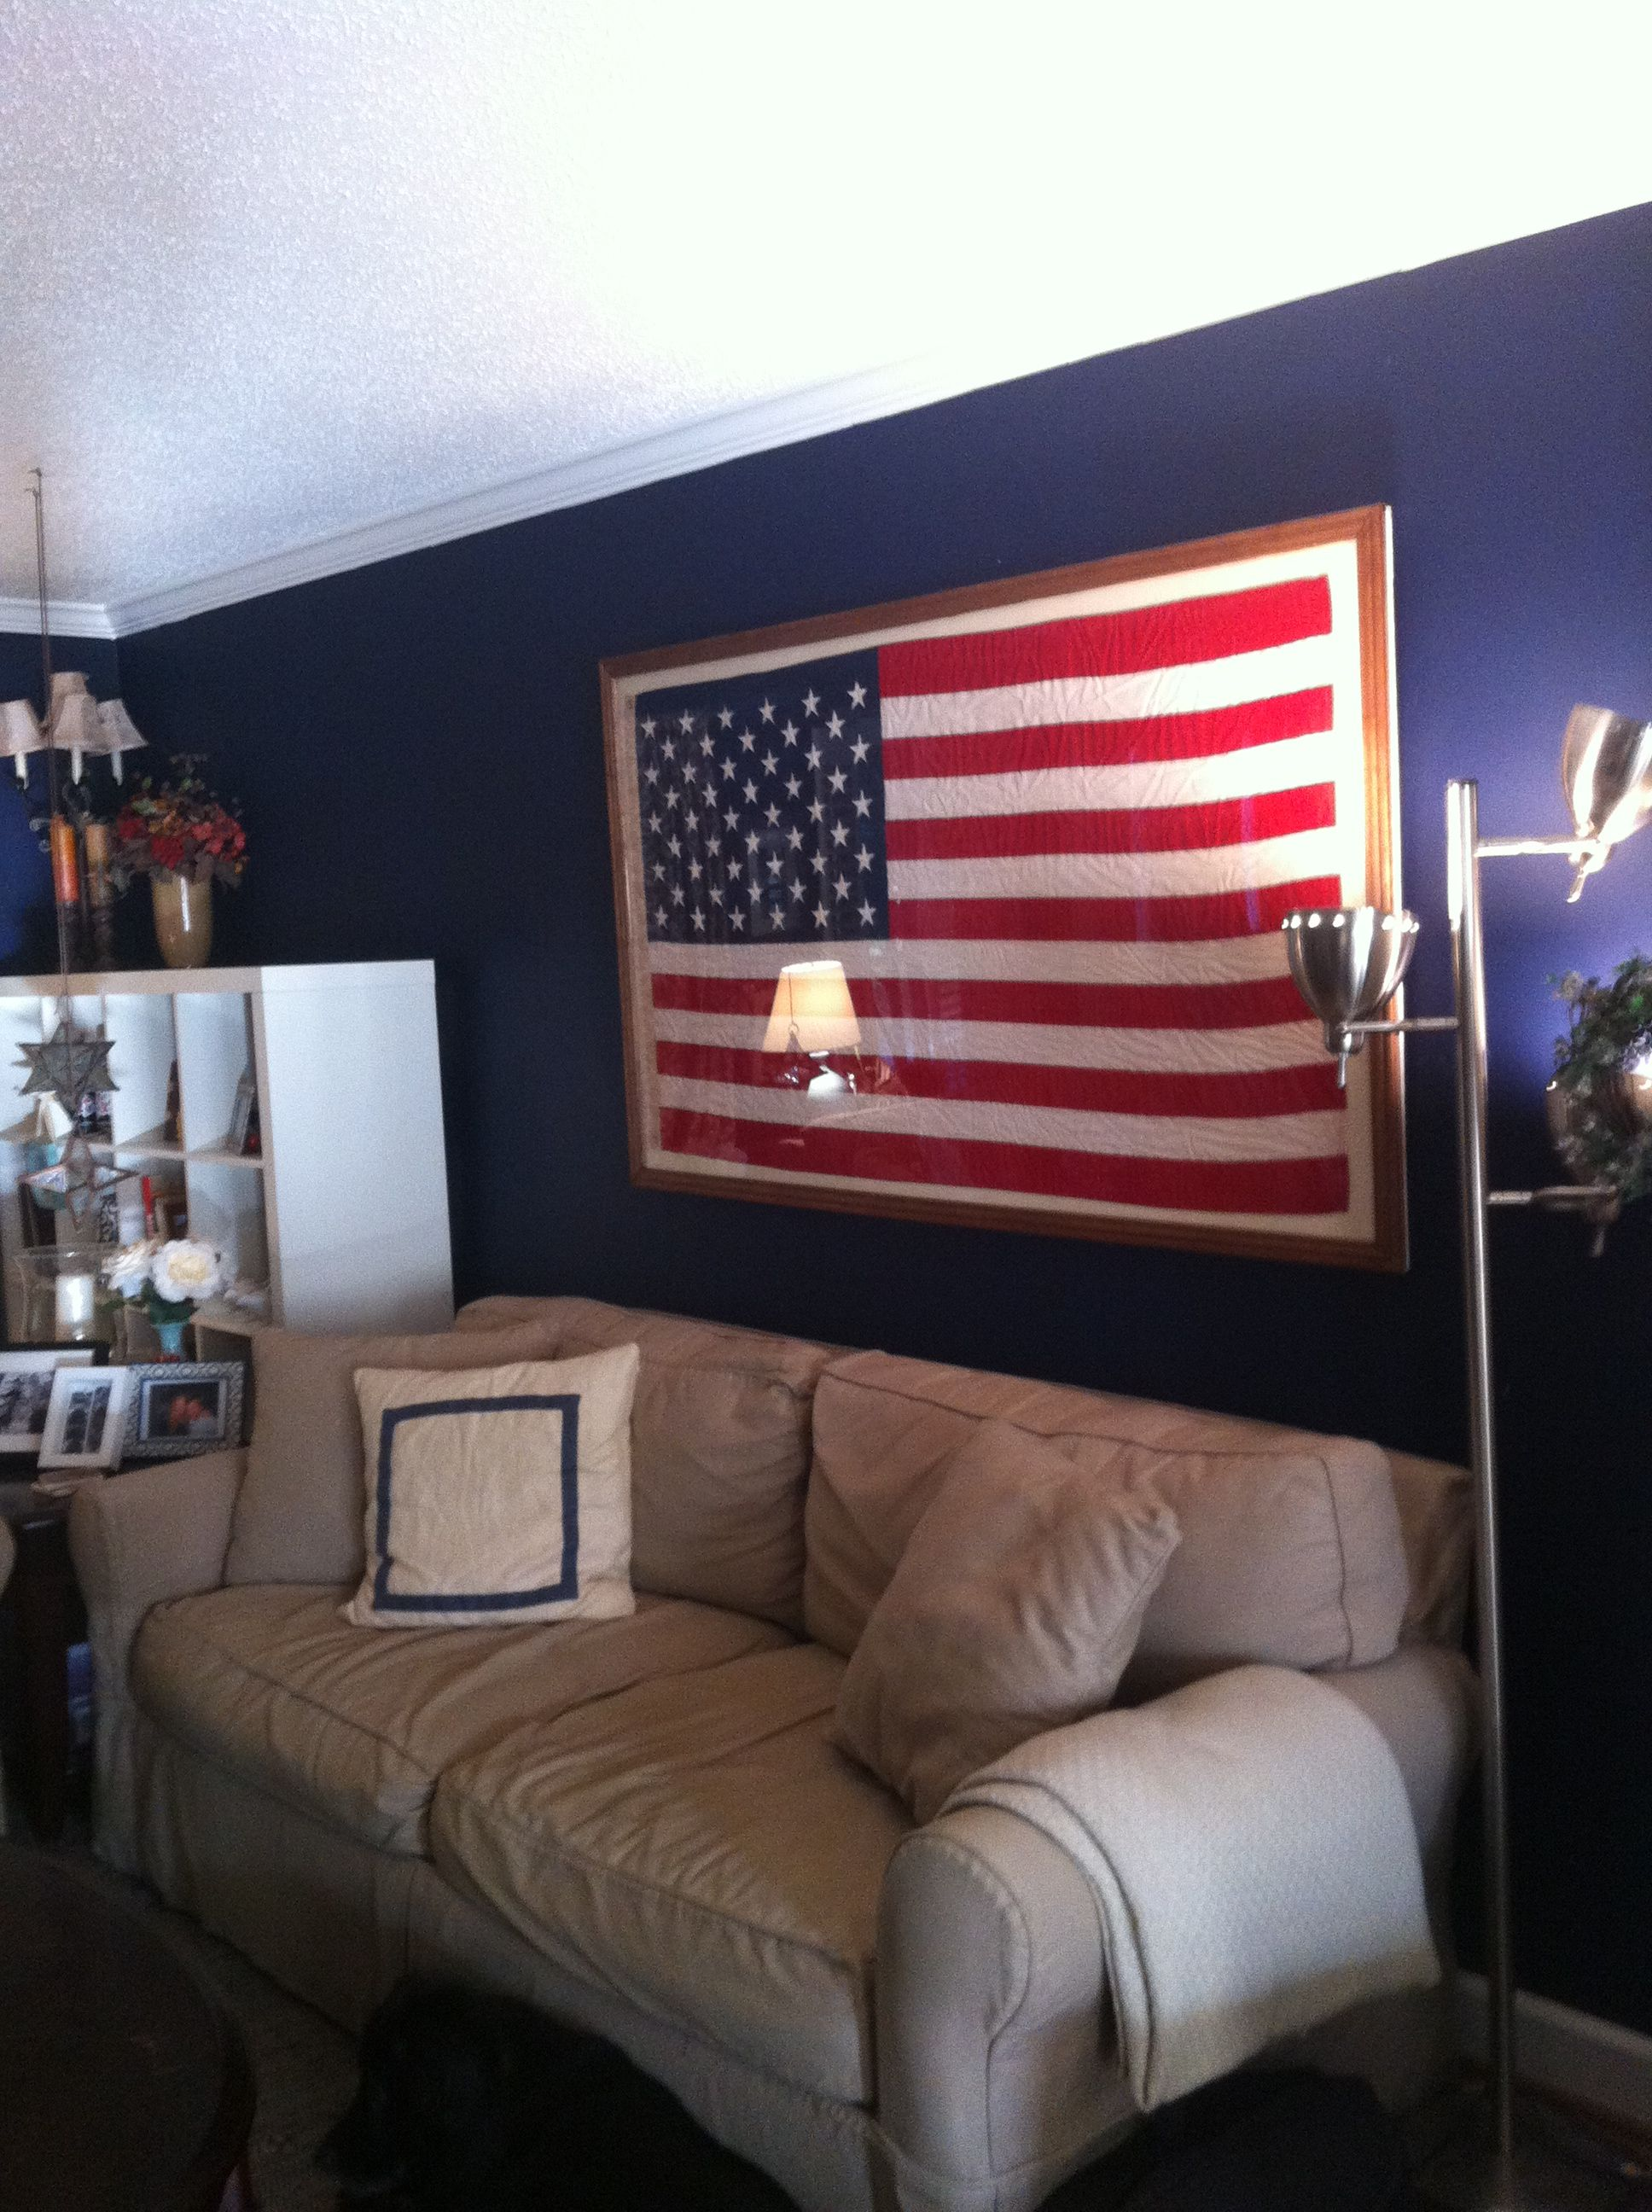 Framed American Flag Michaels Wanted 750 To Frame It But I Built A Frame Out Of Plywood And Plexi Glass For 120 Home Decor Framed American Flag Home